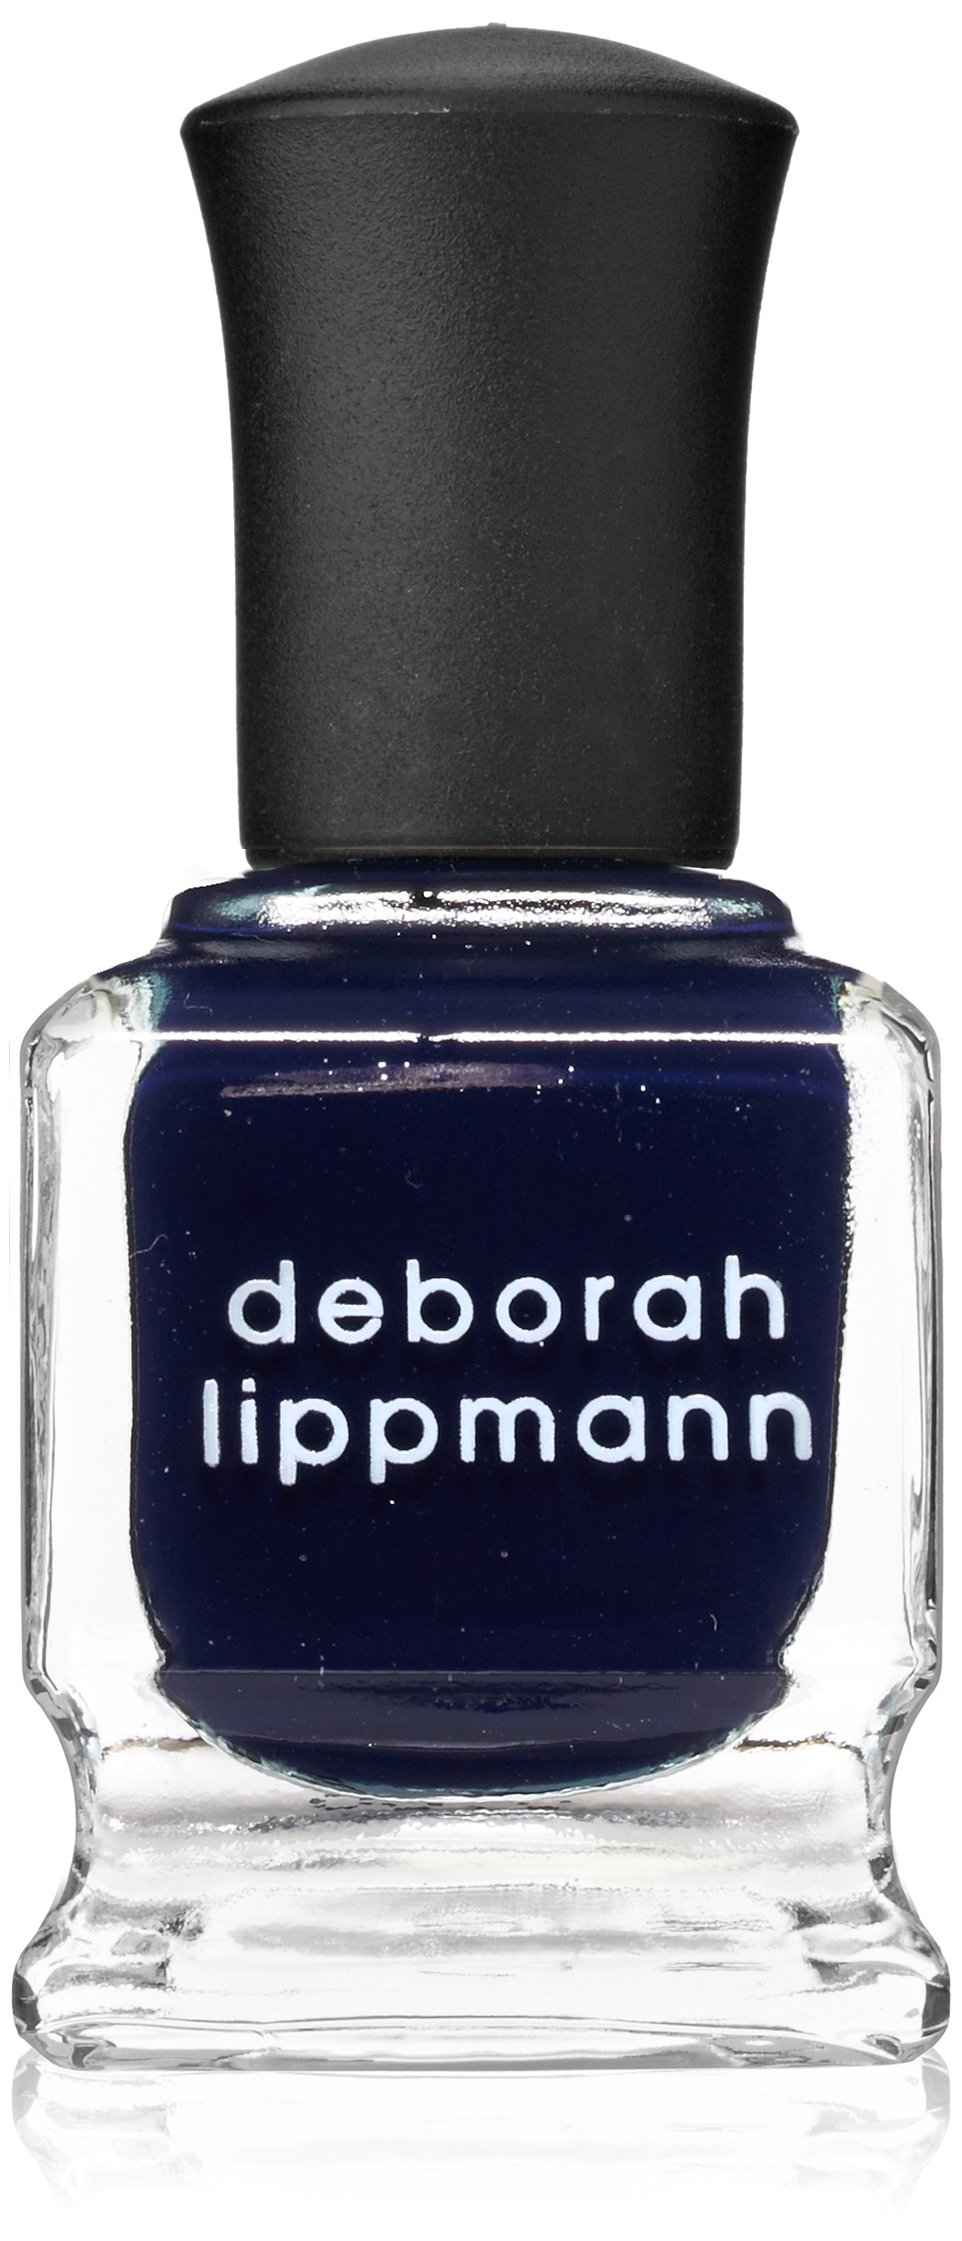 Amazon.com : deborah lippmann Glitter Nail Lacquer, Across The ...